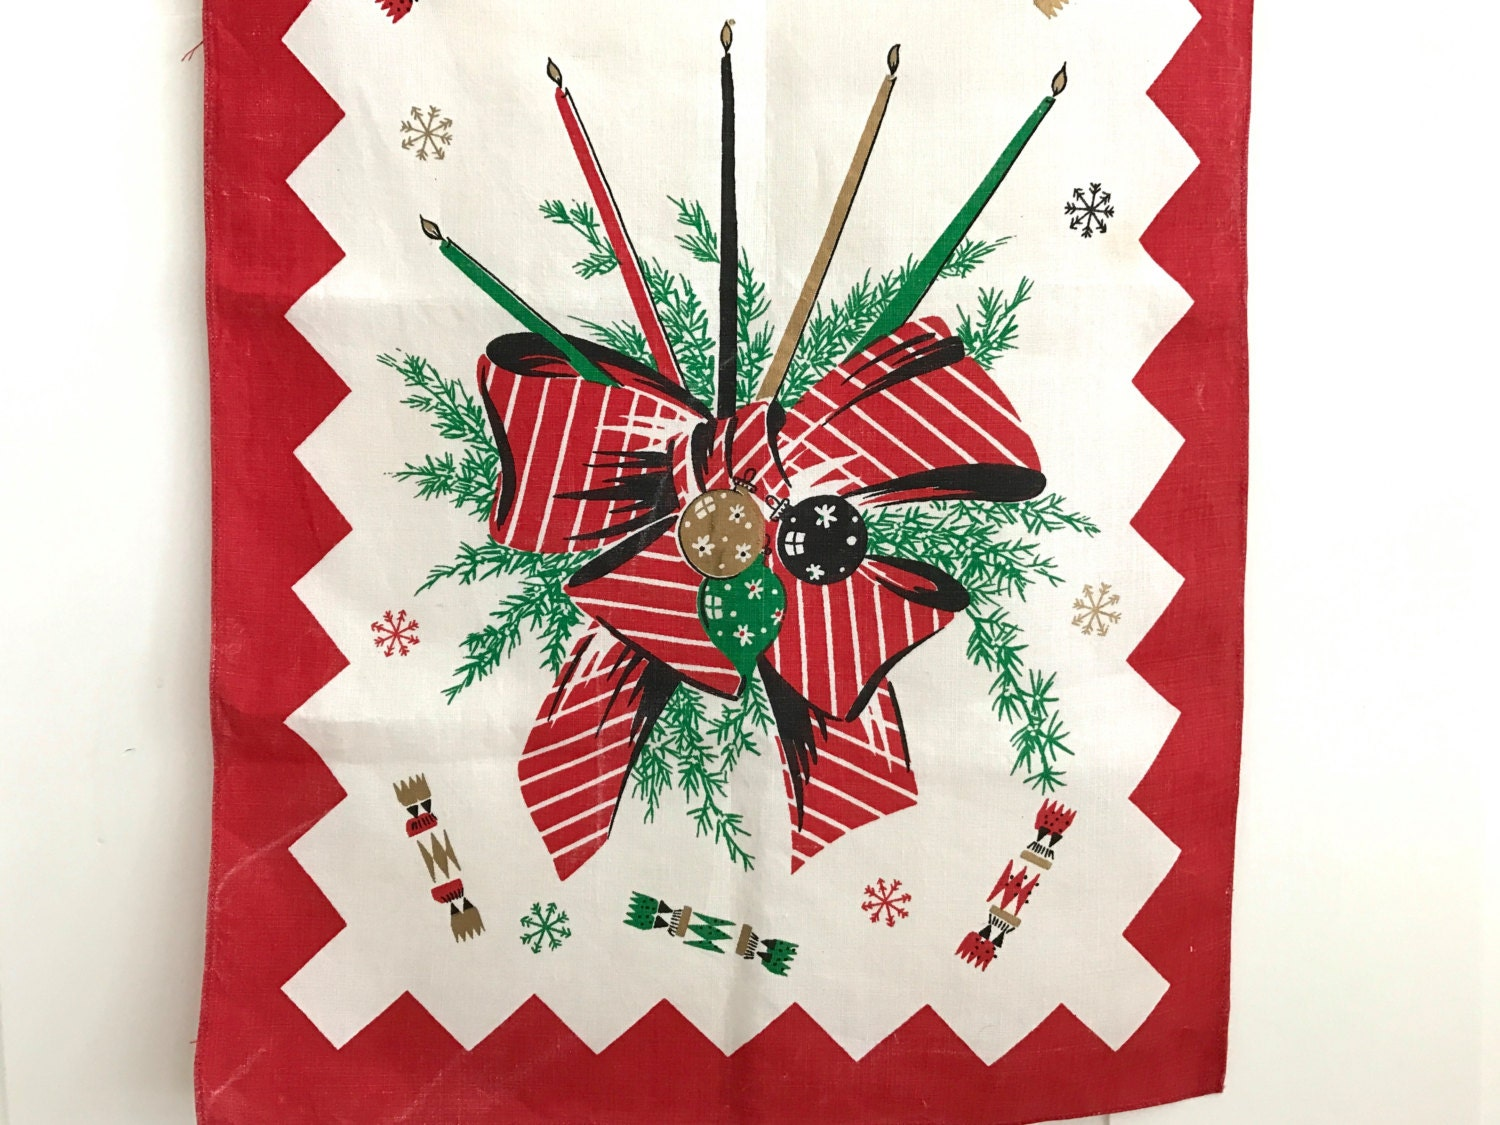 Vintage Christmas Table Runner Mid Century Candles Evergreen